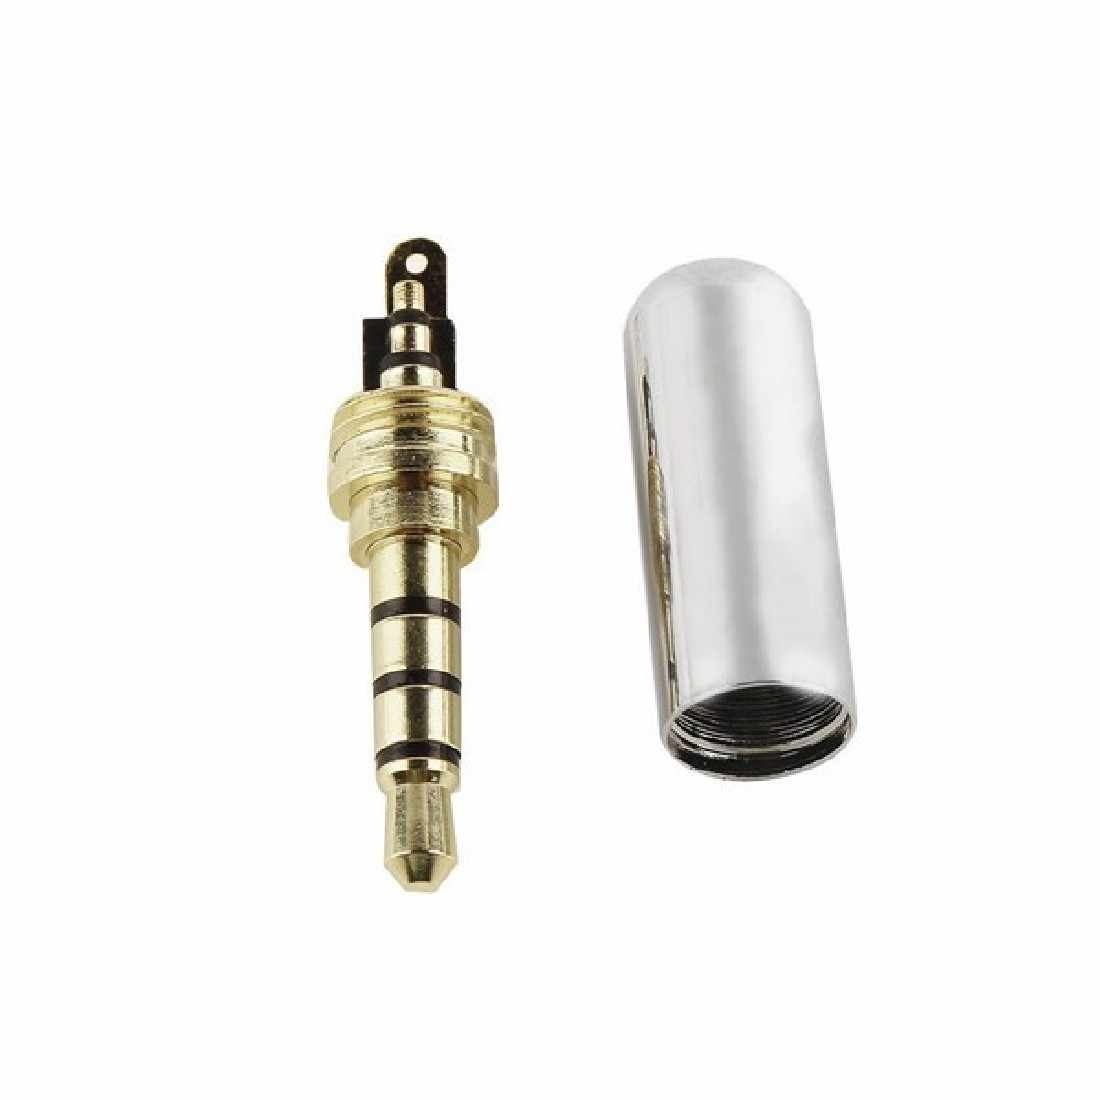 Stereo Jack Plug 3.5 mm 1/8 4 Poles Dual Channel Cover Connector Plugs for Headphone Earphone Soldering